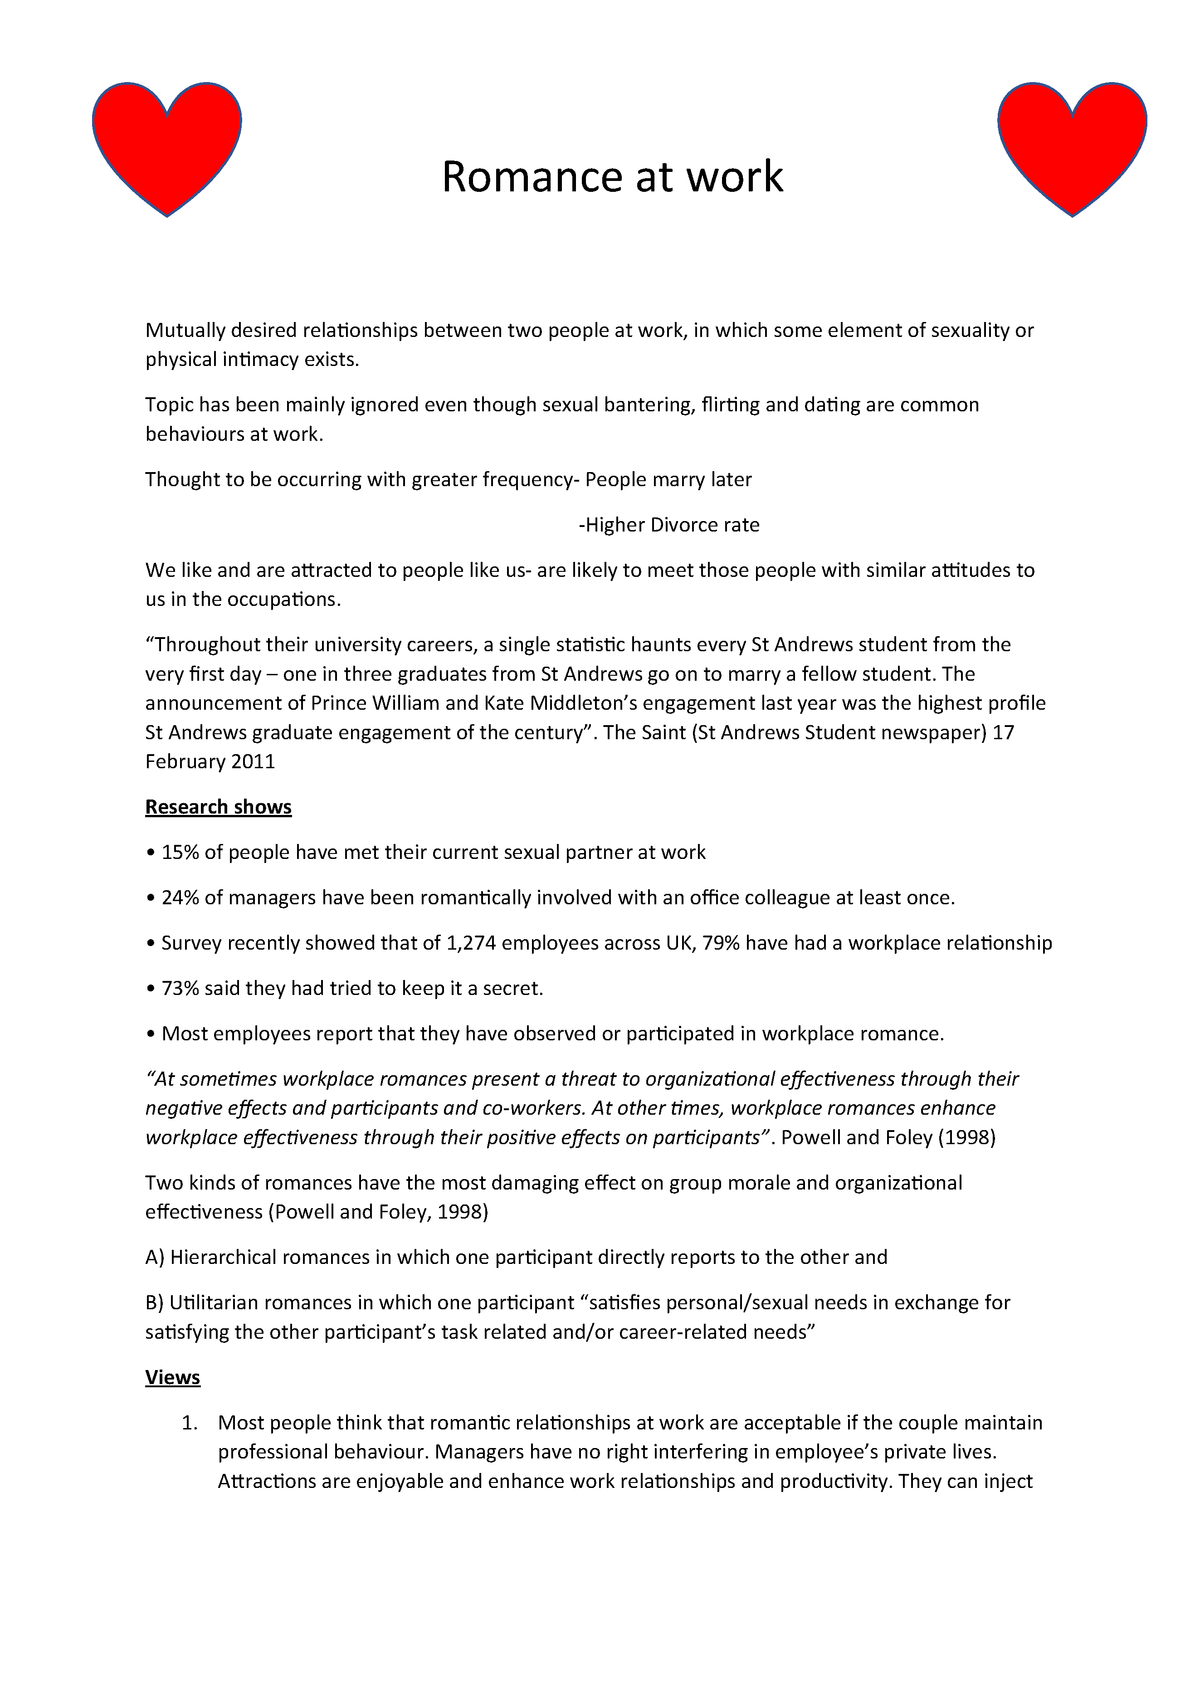 Romance at work - Lecture notes 3-8 - MGT2002: Business and